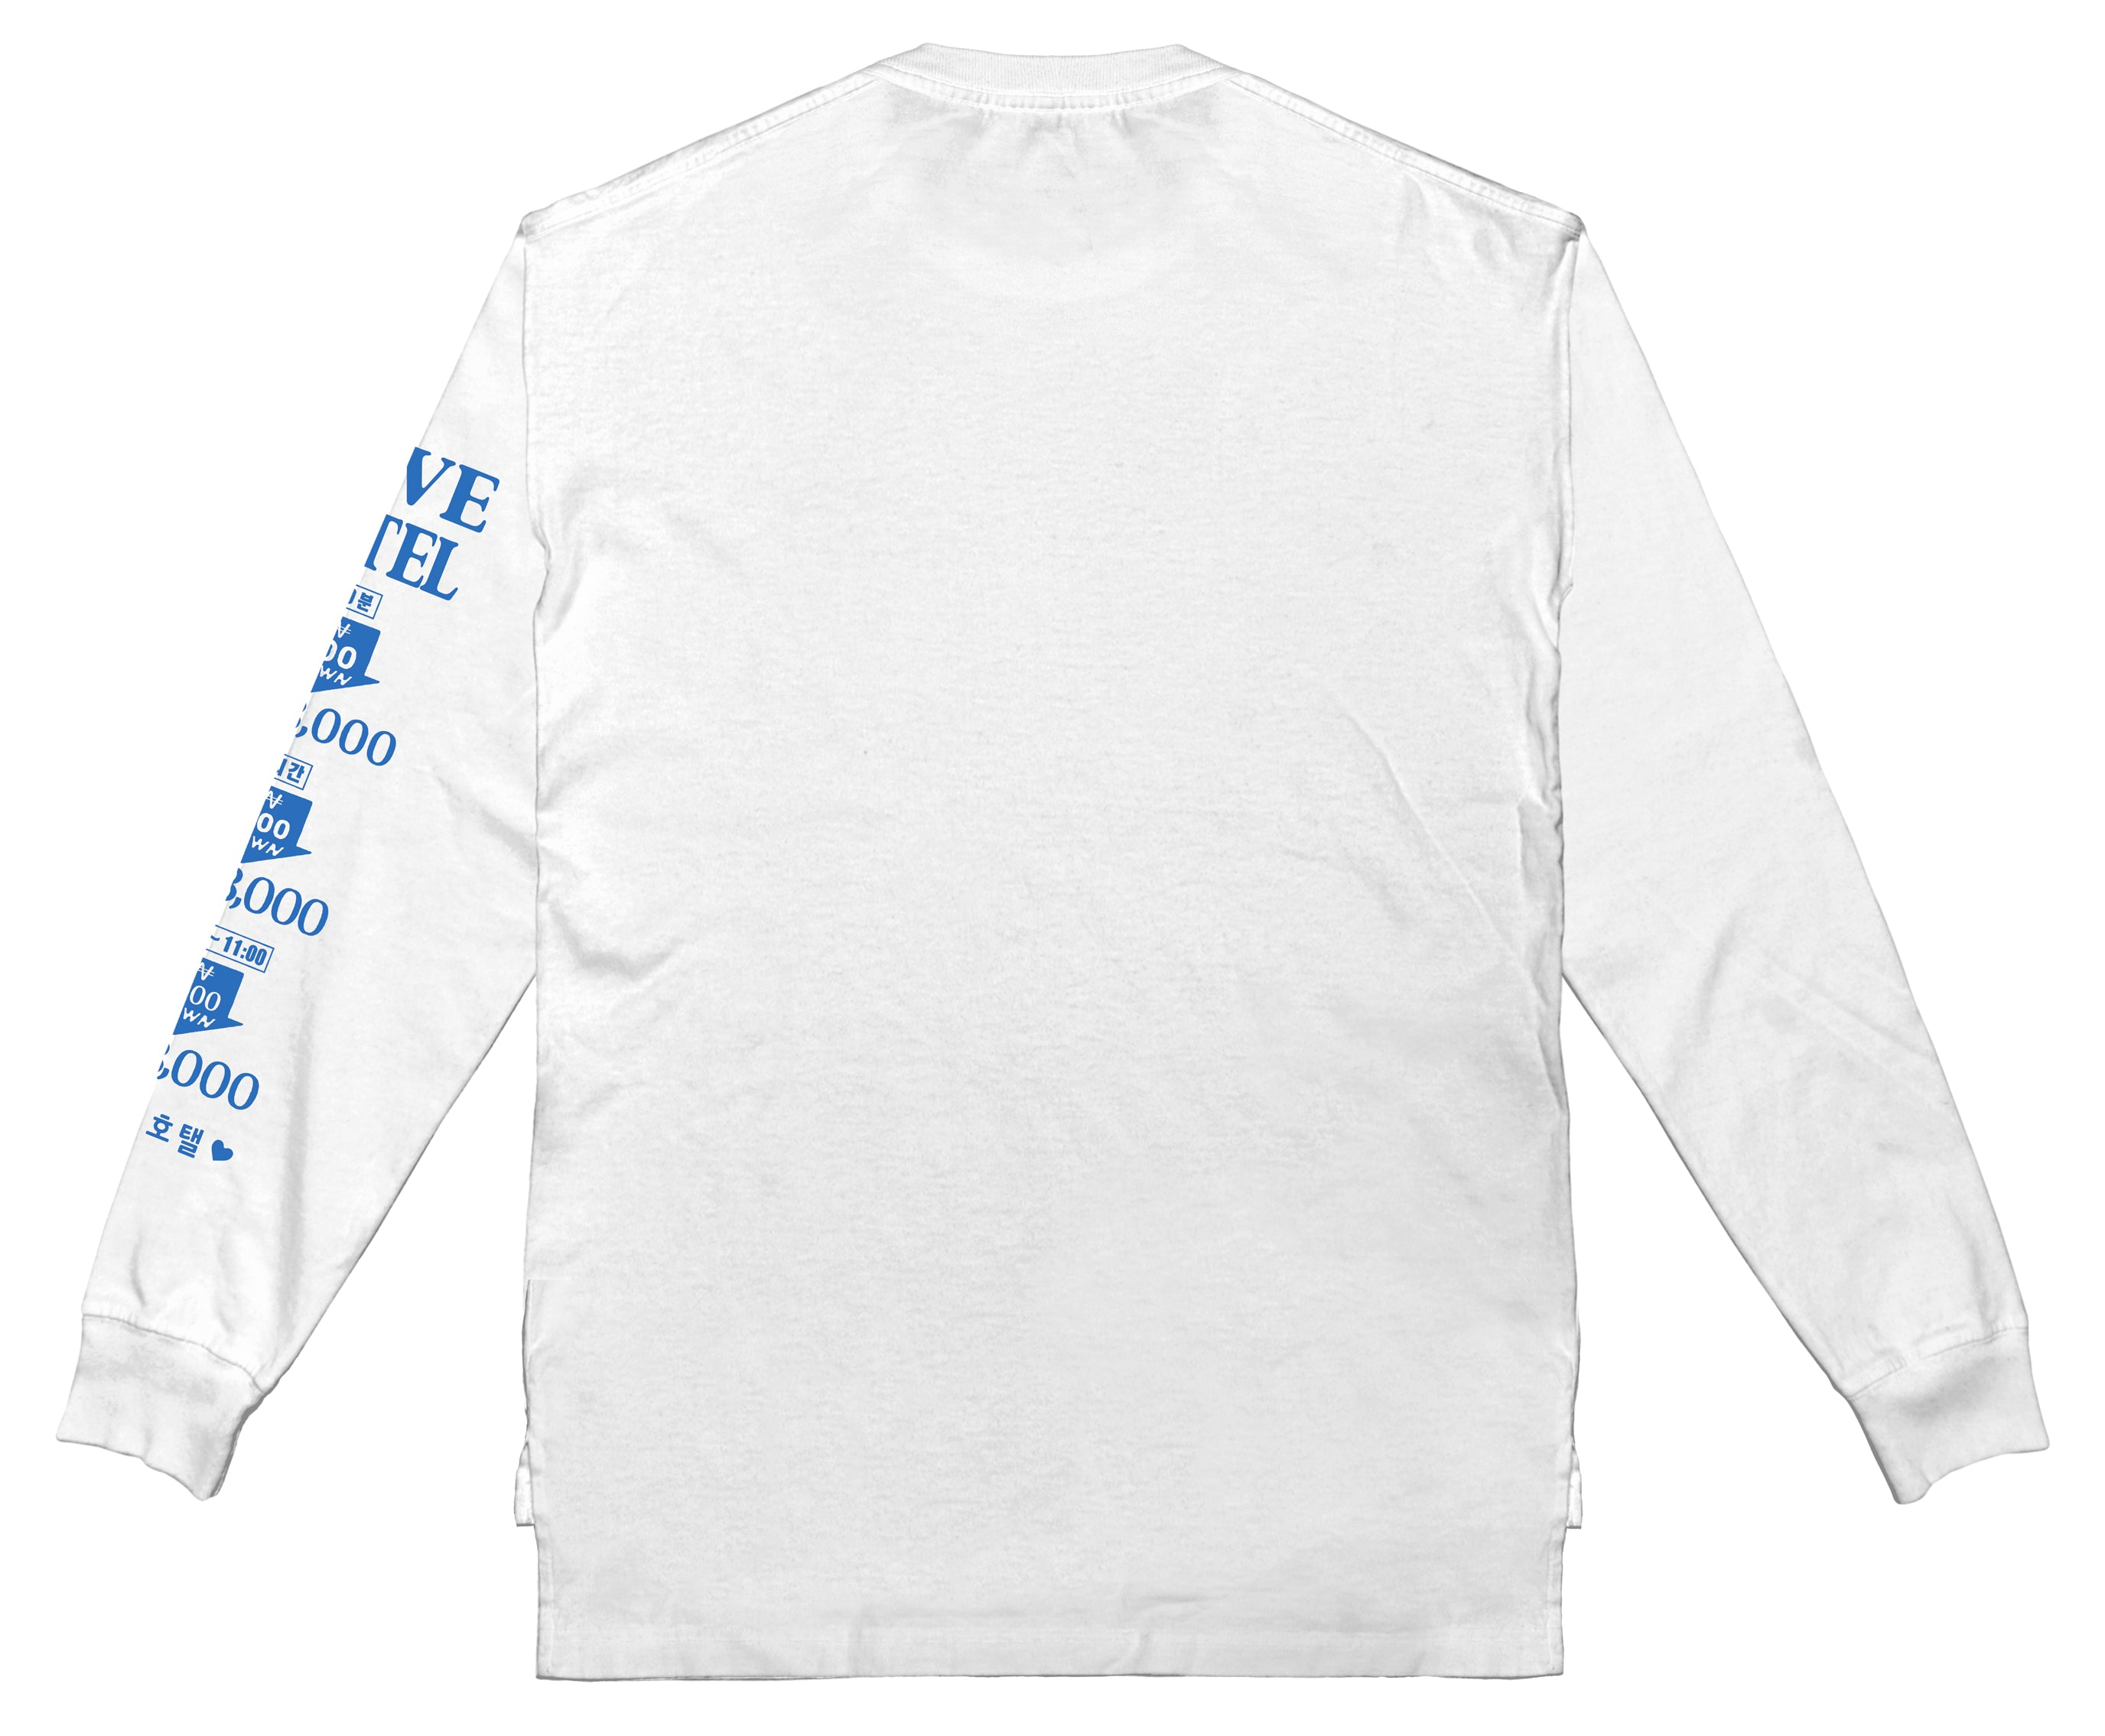 Do Not Disturb - Long Sleeve (White)